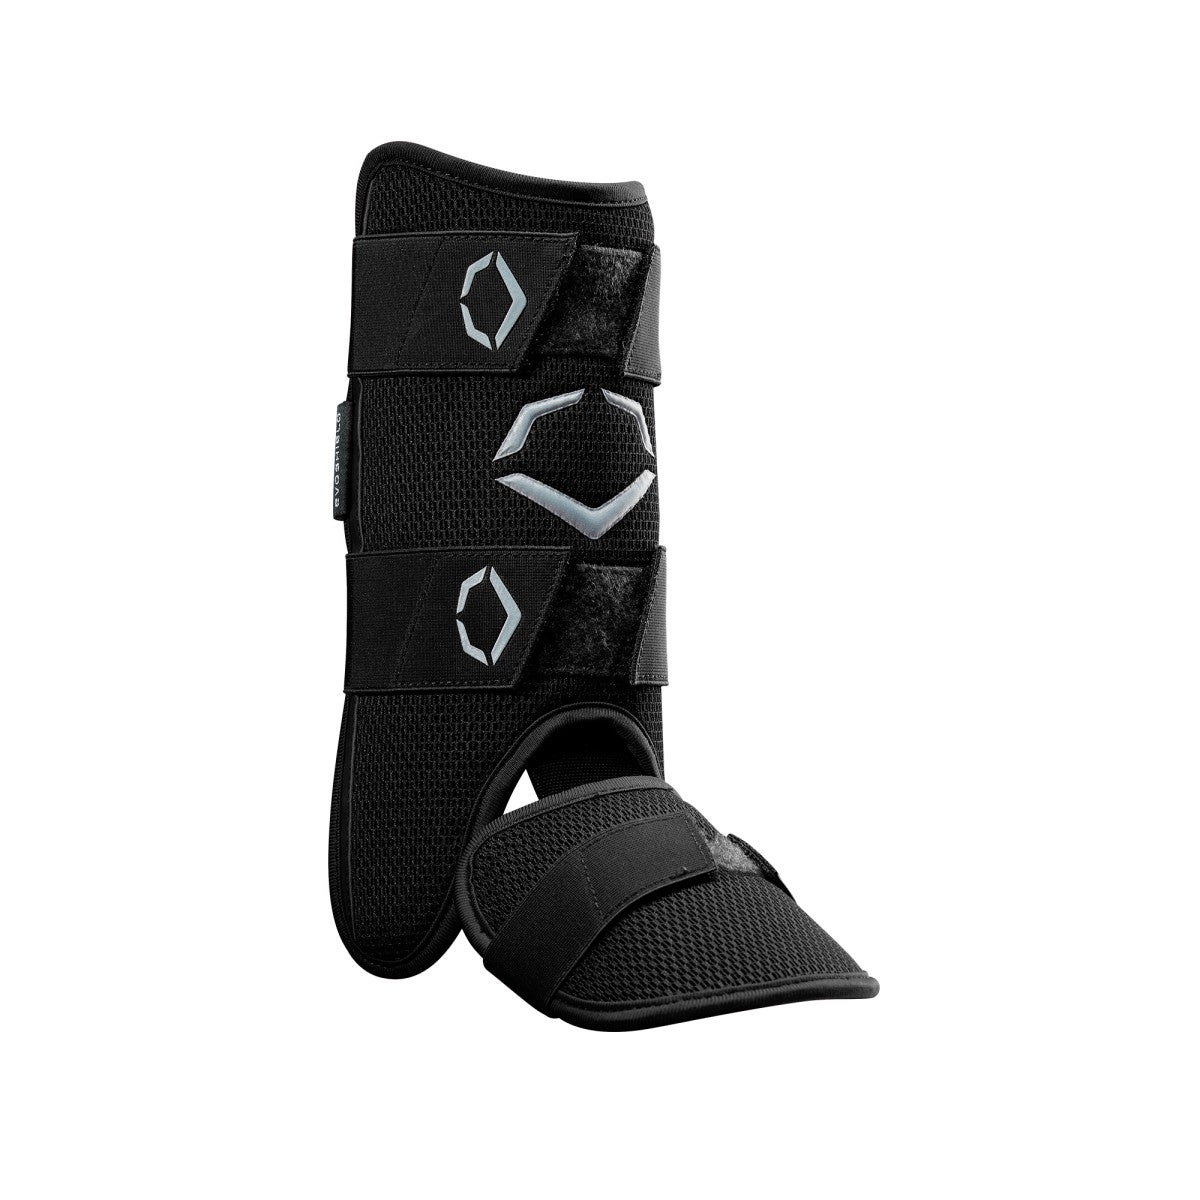 PRO-SRZ Batter's Double Ankle Leg Guard